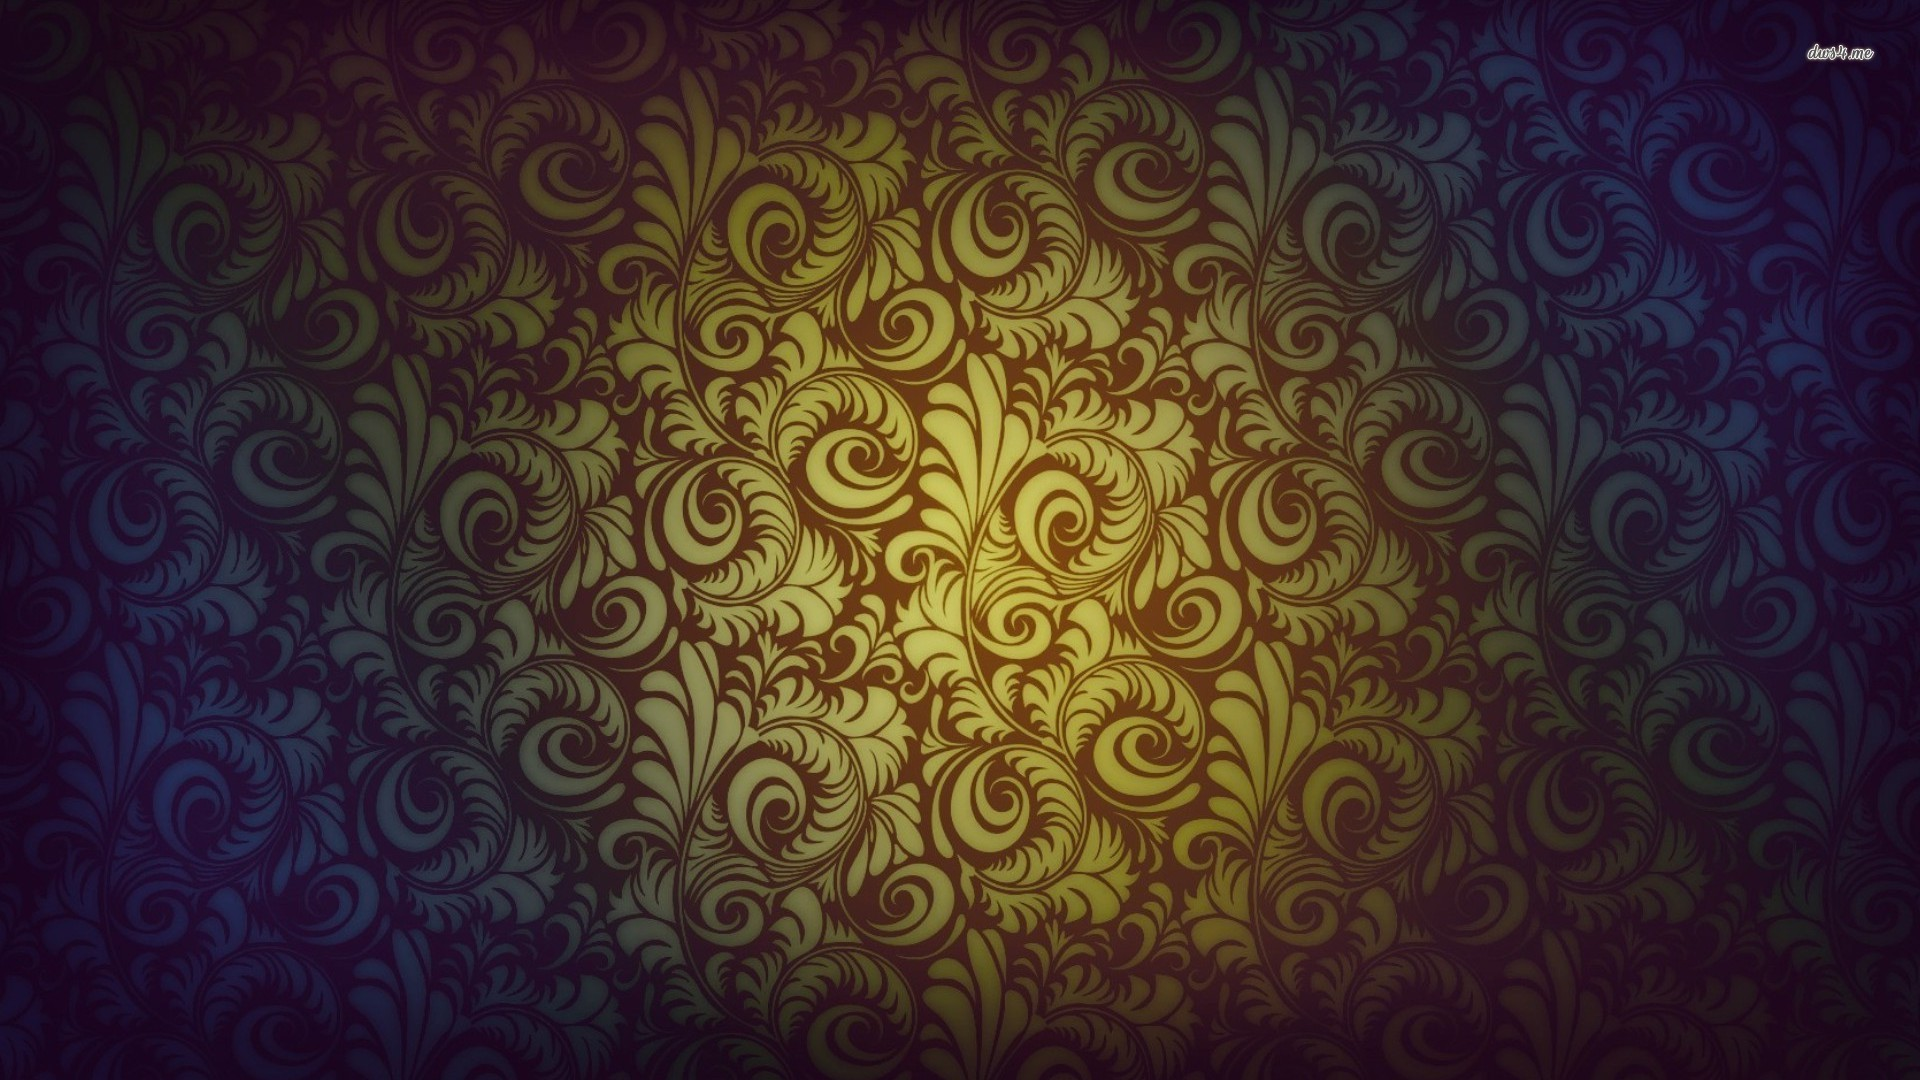 14597-paisley-pattern-1920x1080-abstract-wallpaper.jpg